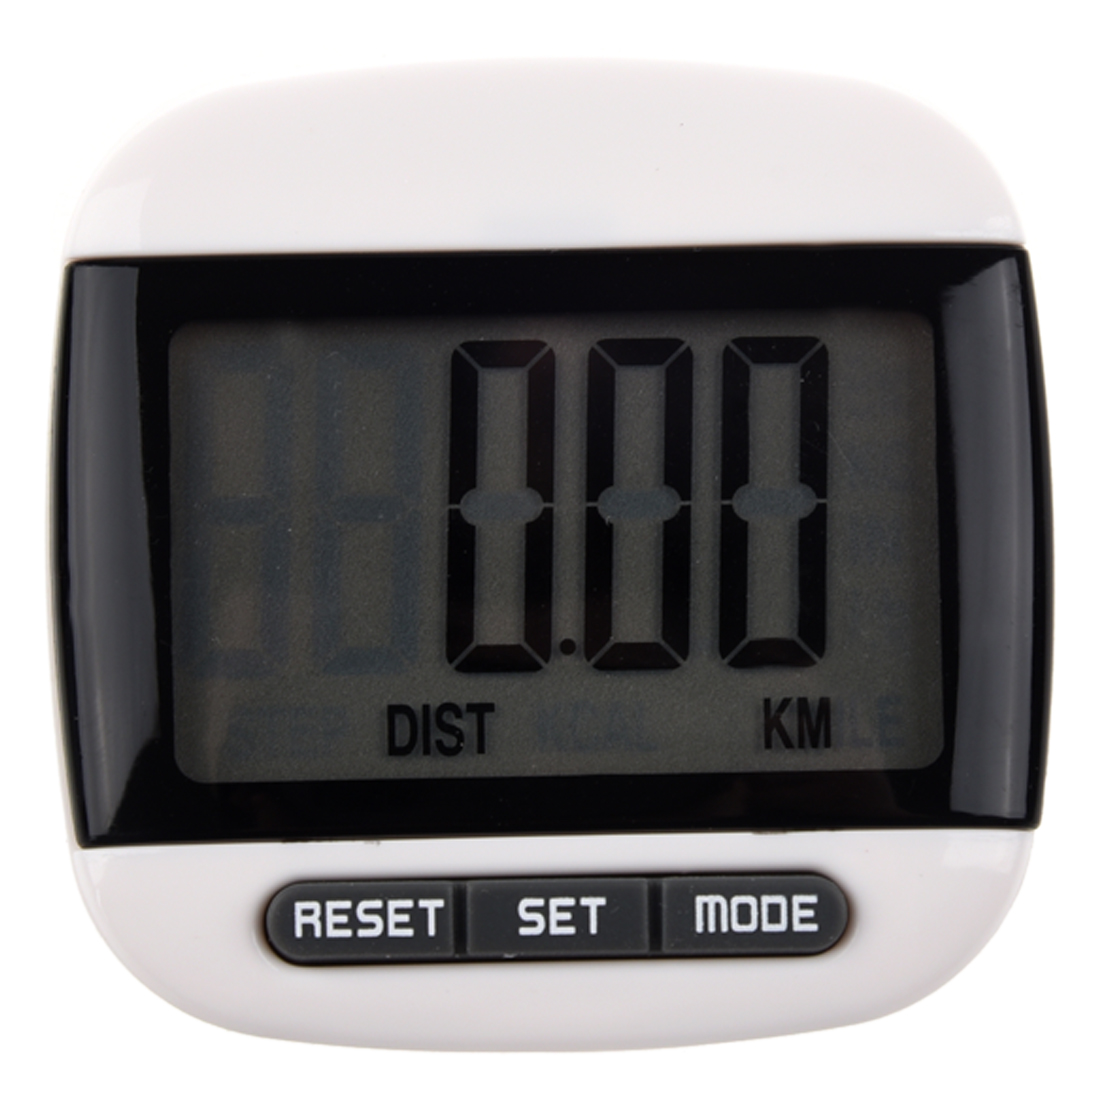 ELOS-New Multi-function Pedometer Distance Calorie Counter